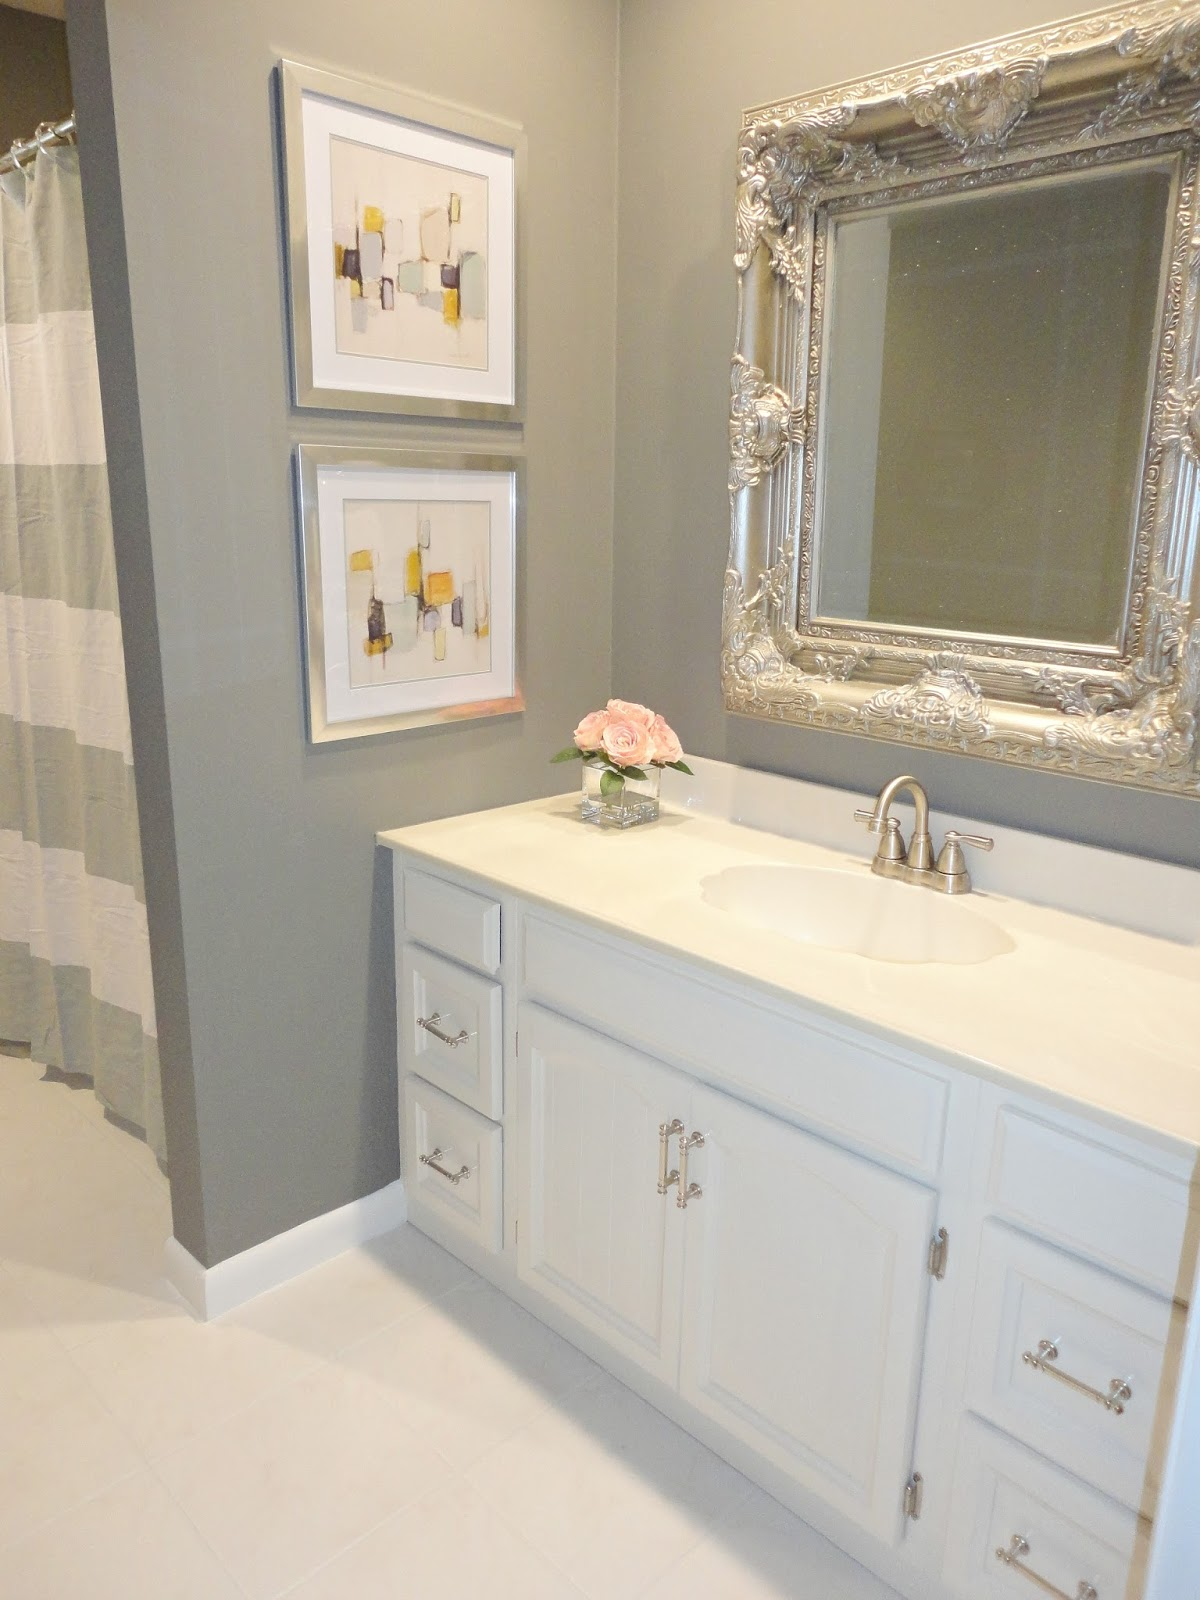 LiveLoveDIY DIY Bathroom Remodel on a Bud